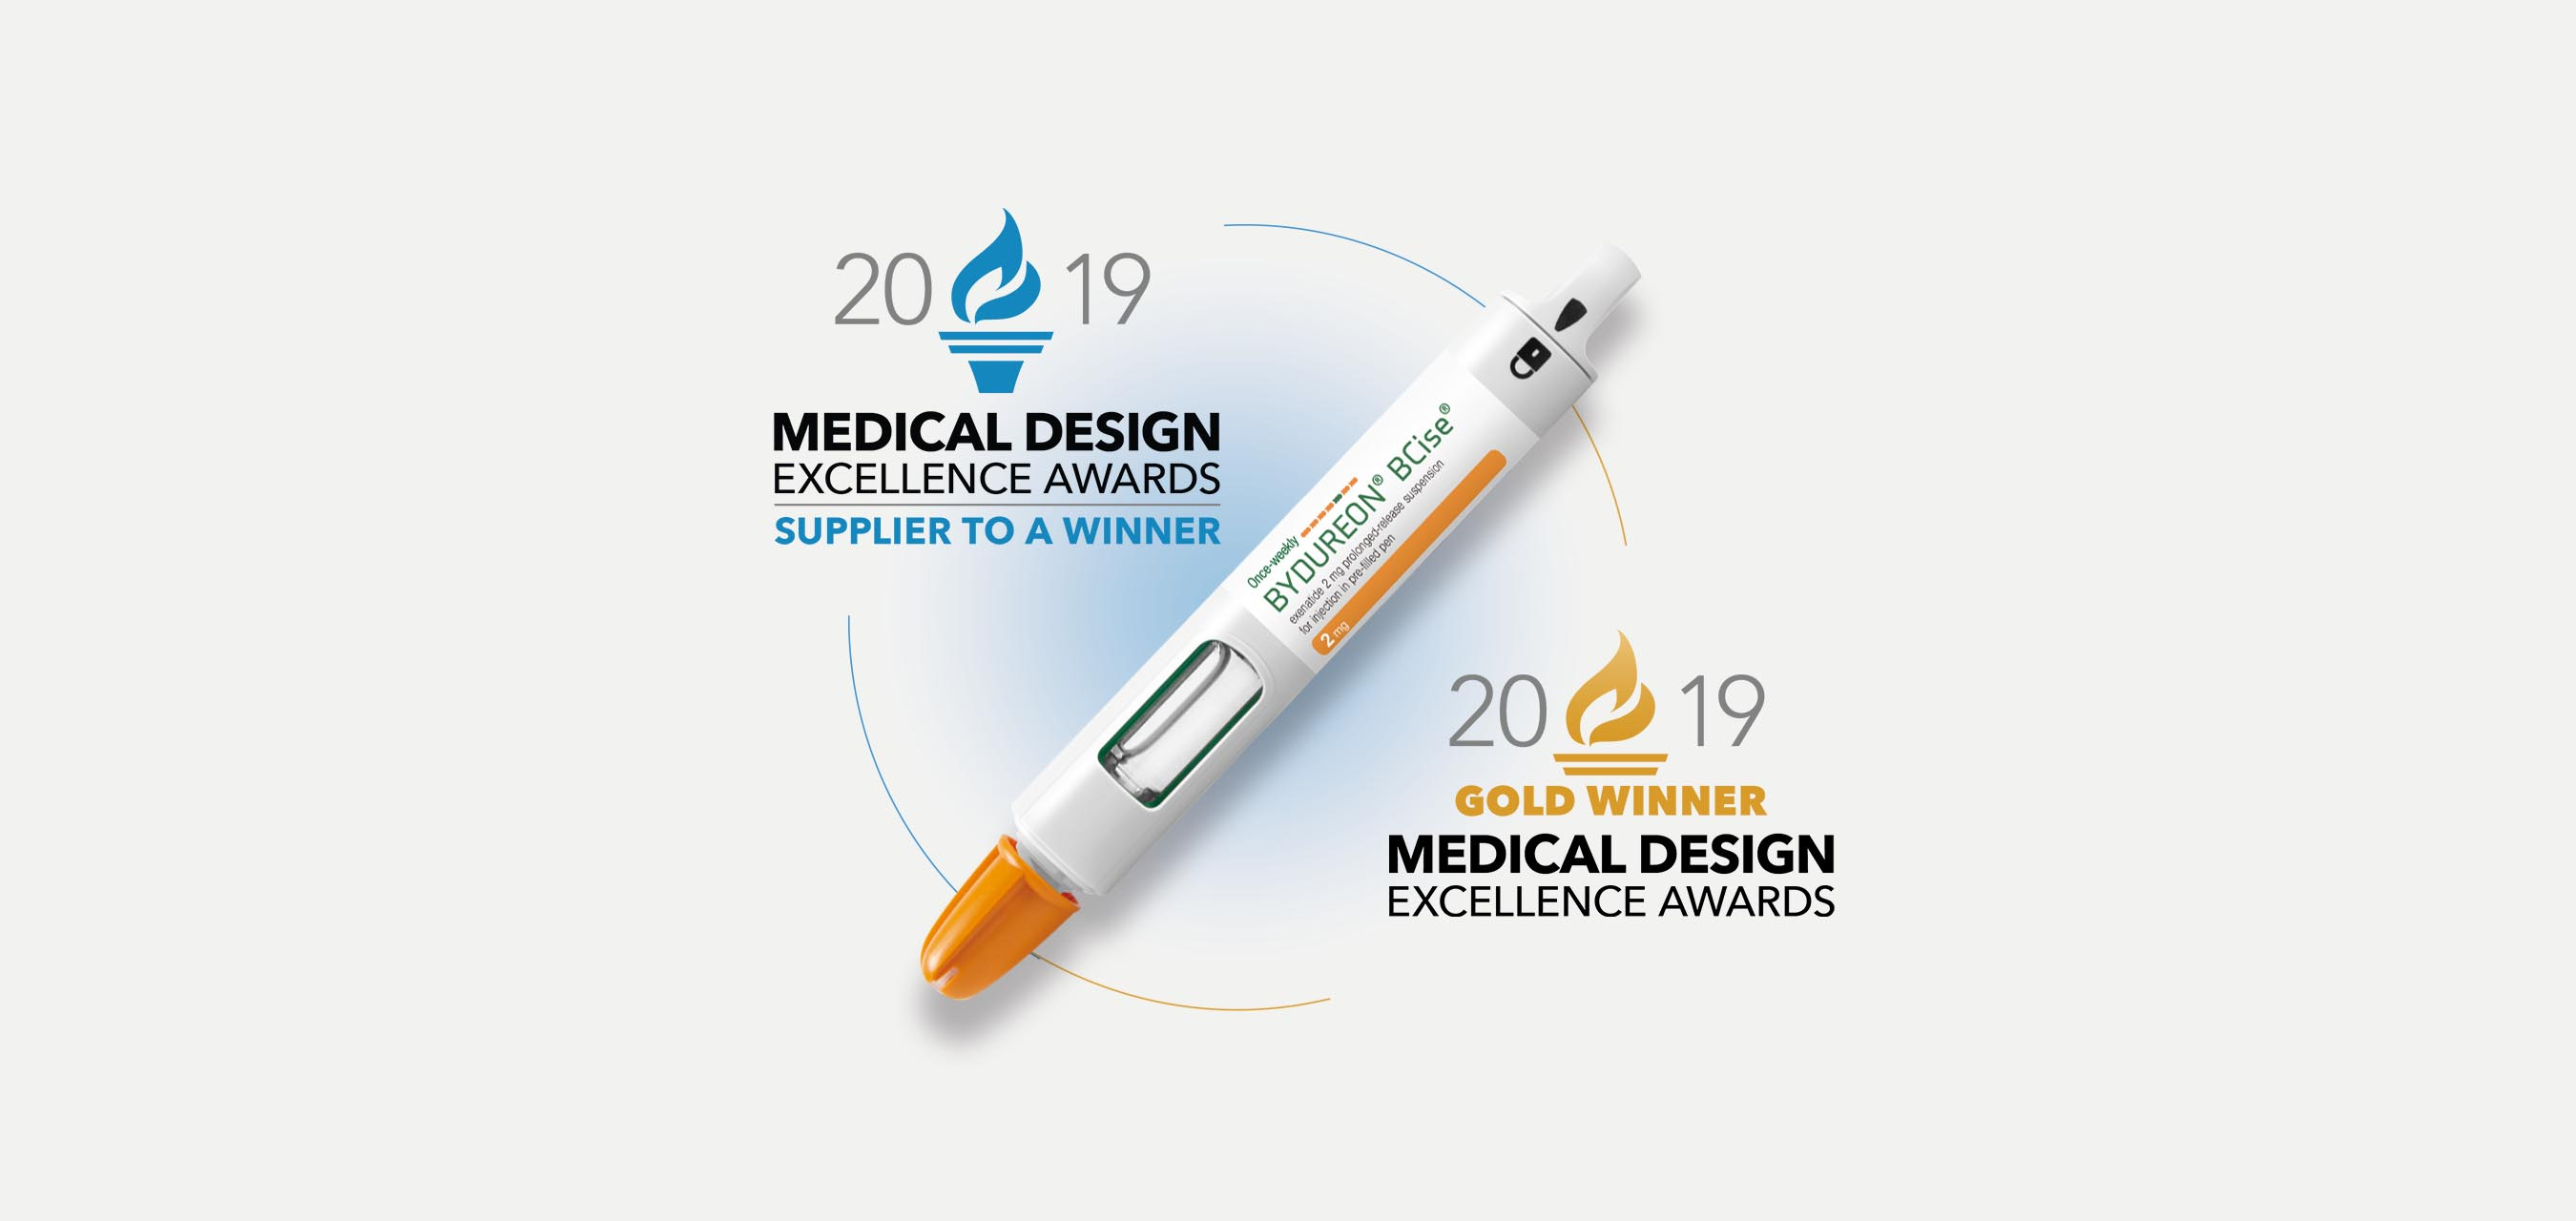 Medical Design Excellence Awards 2